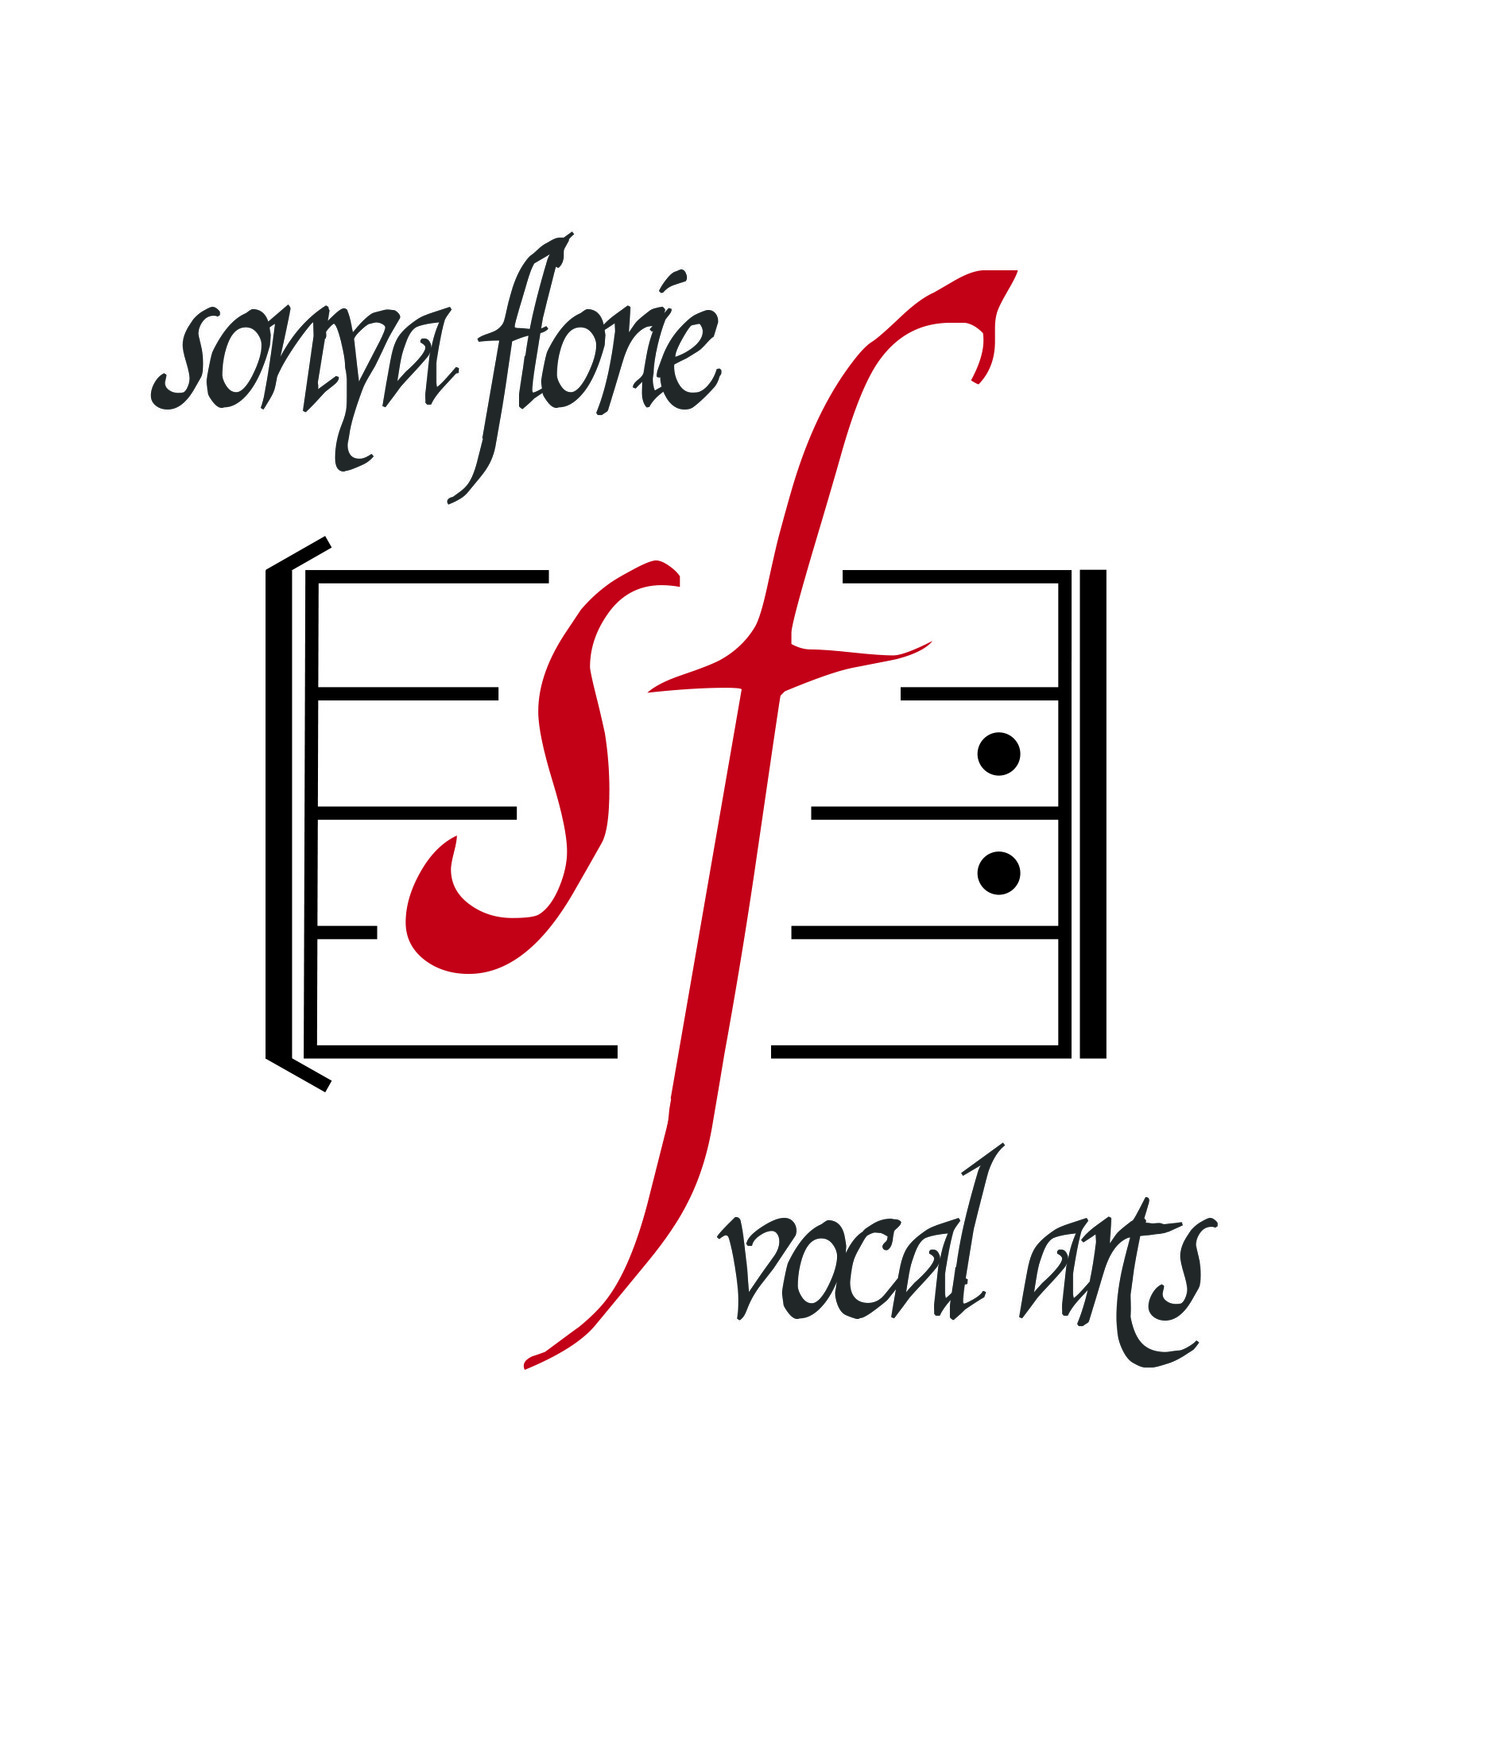 Sonya Florie Vocal Arts